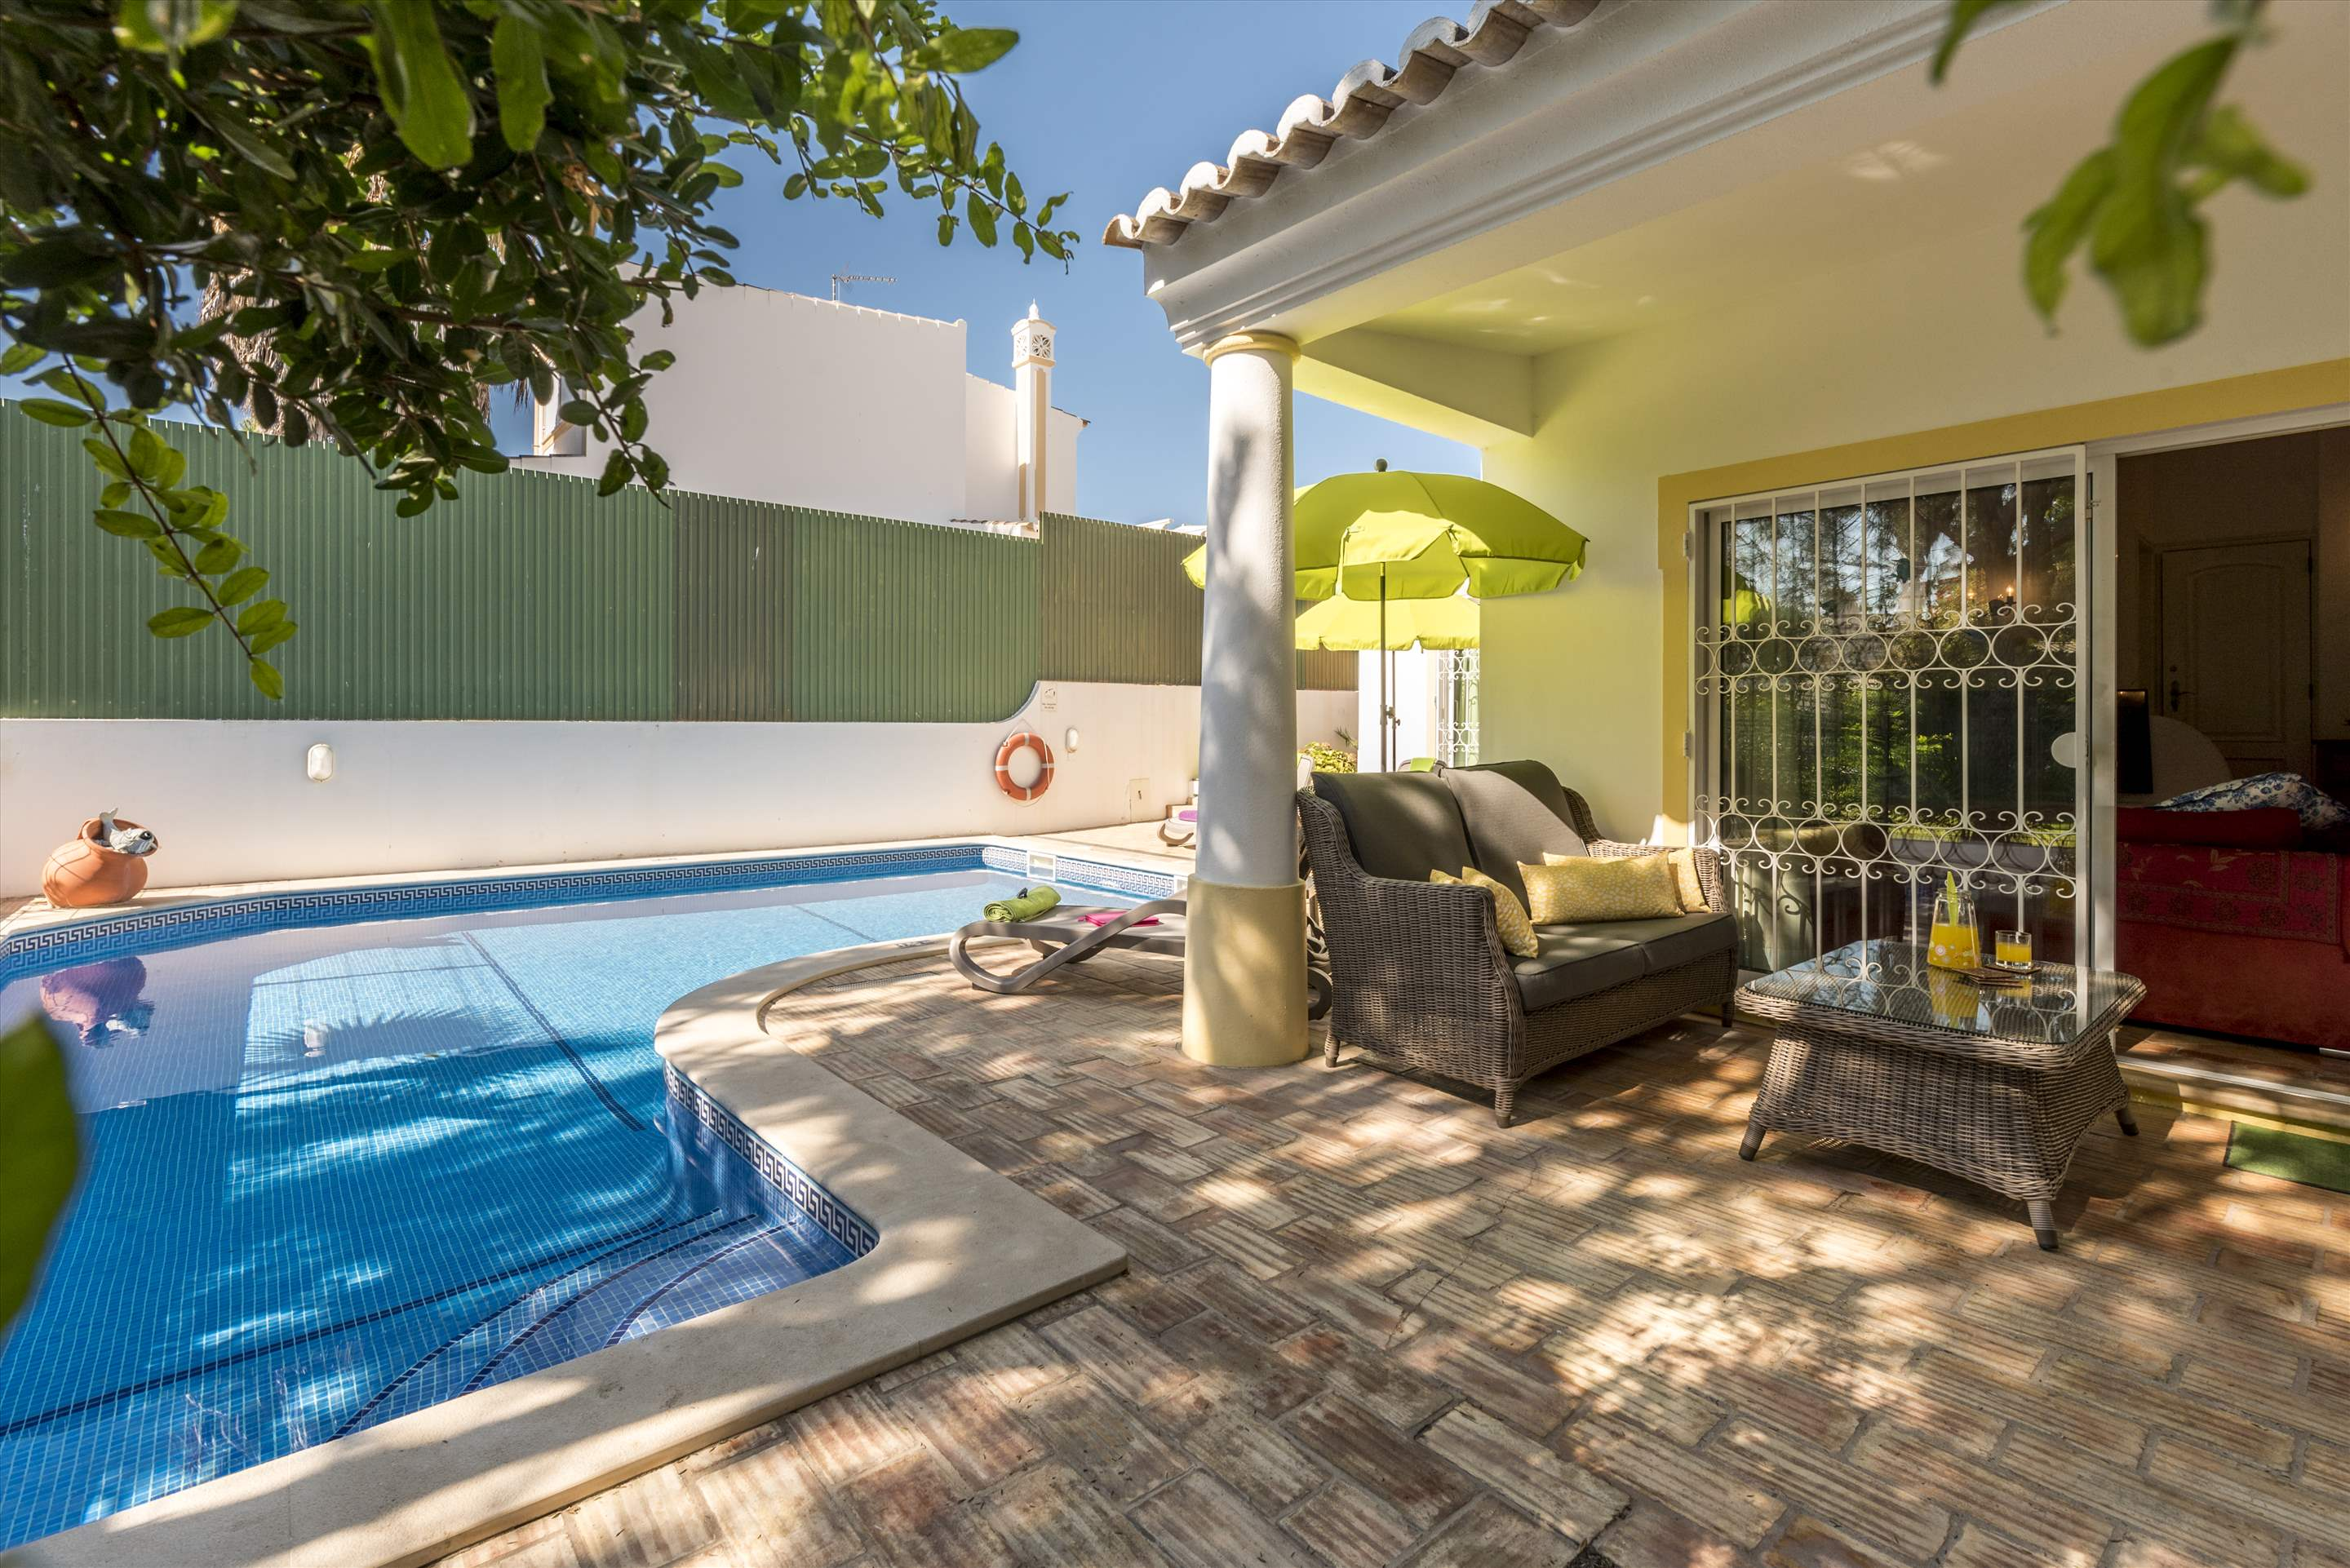 Casa Guia, Two Bedroom Rate, 2 bedroom villa in Gale, Vale da Parra and Guia, Algarve Photo #16